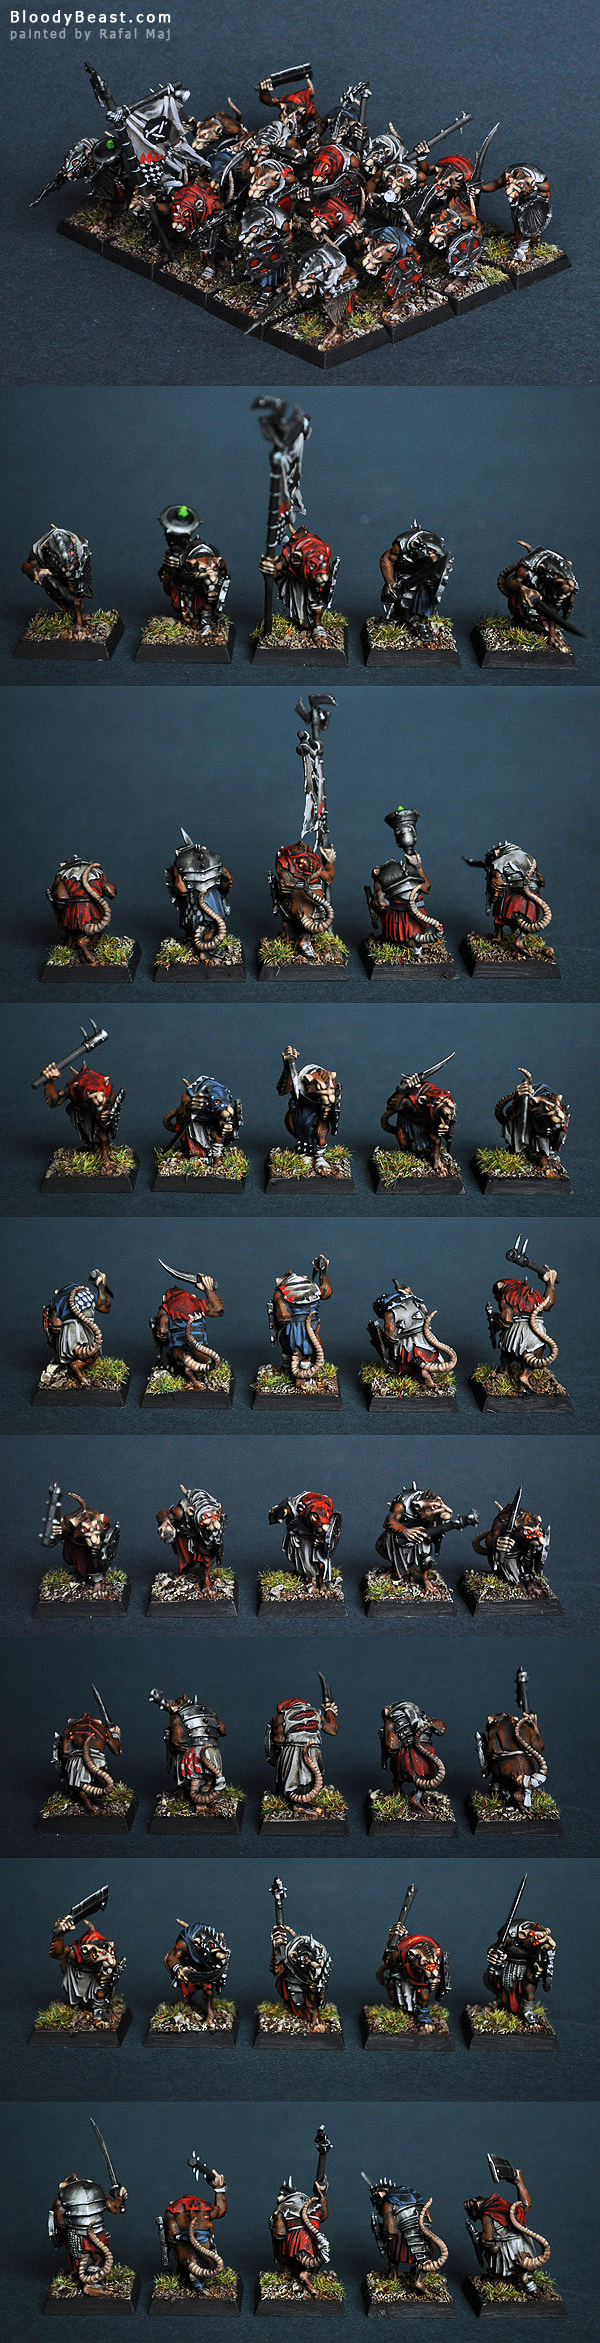 Skaven Clanrats with Hand Weapons painted by Rafal Maj (BloodyBeast.com)